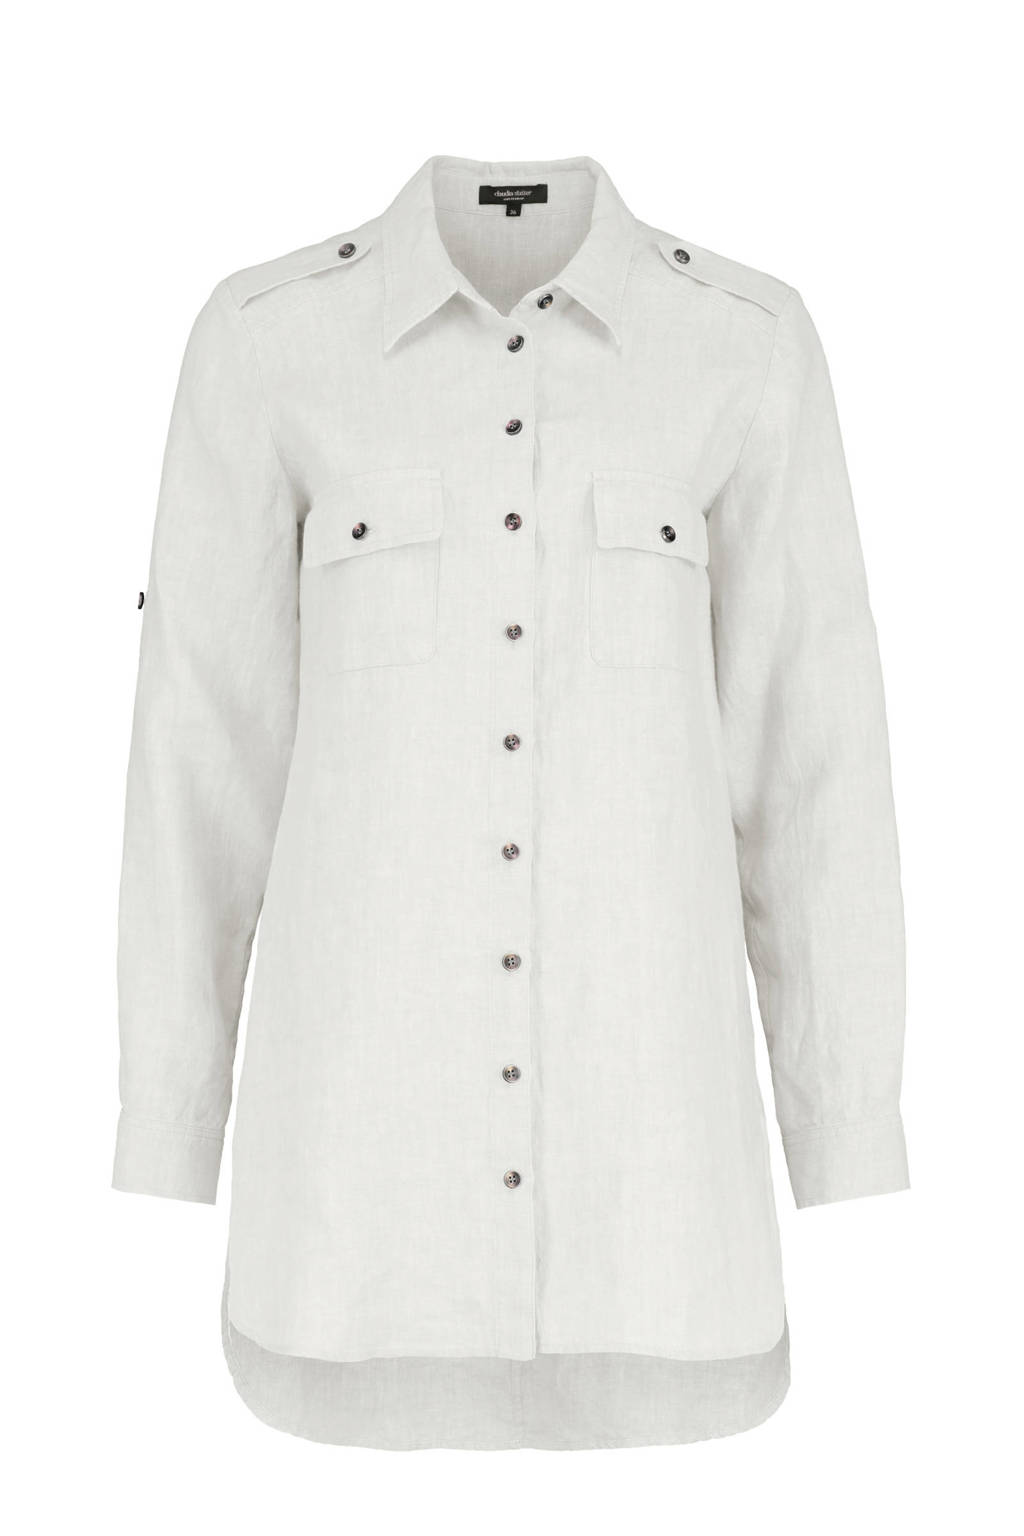 Claudia Sträter linnen blouse off white, Off White